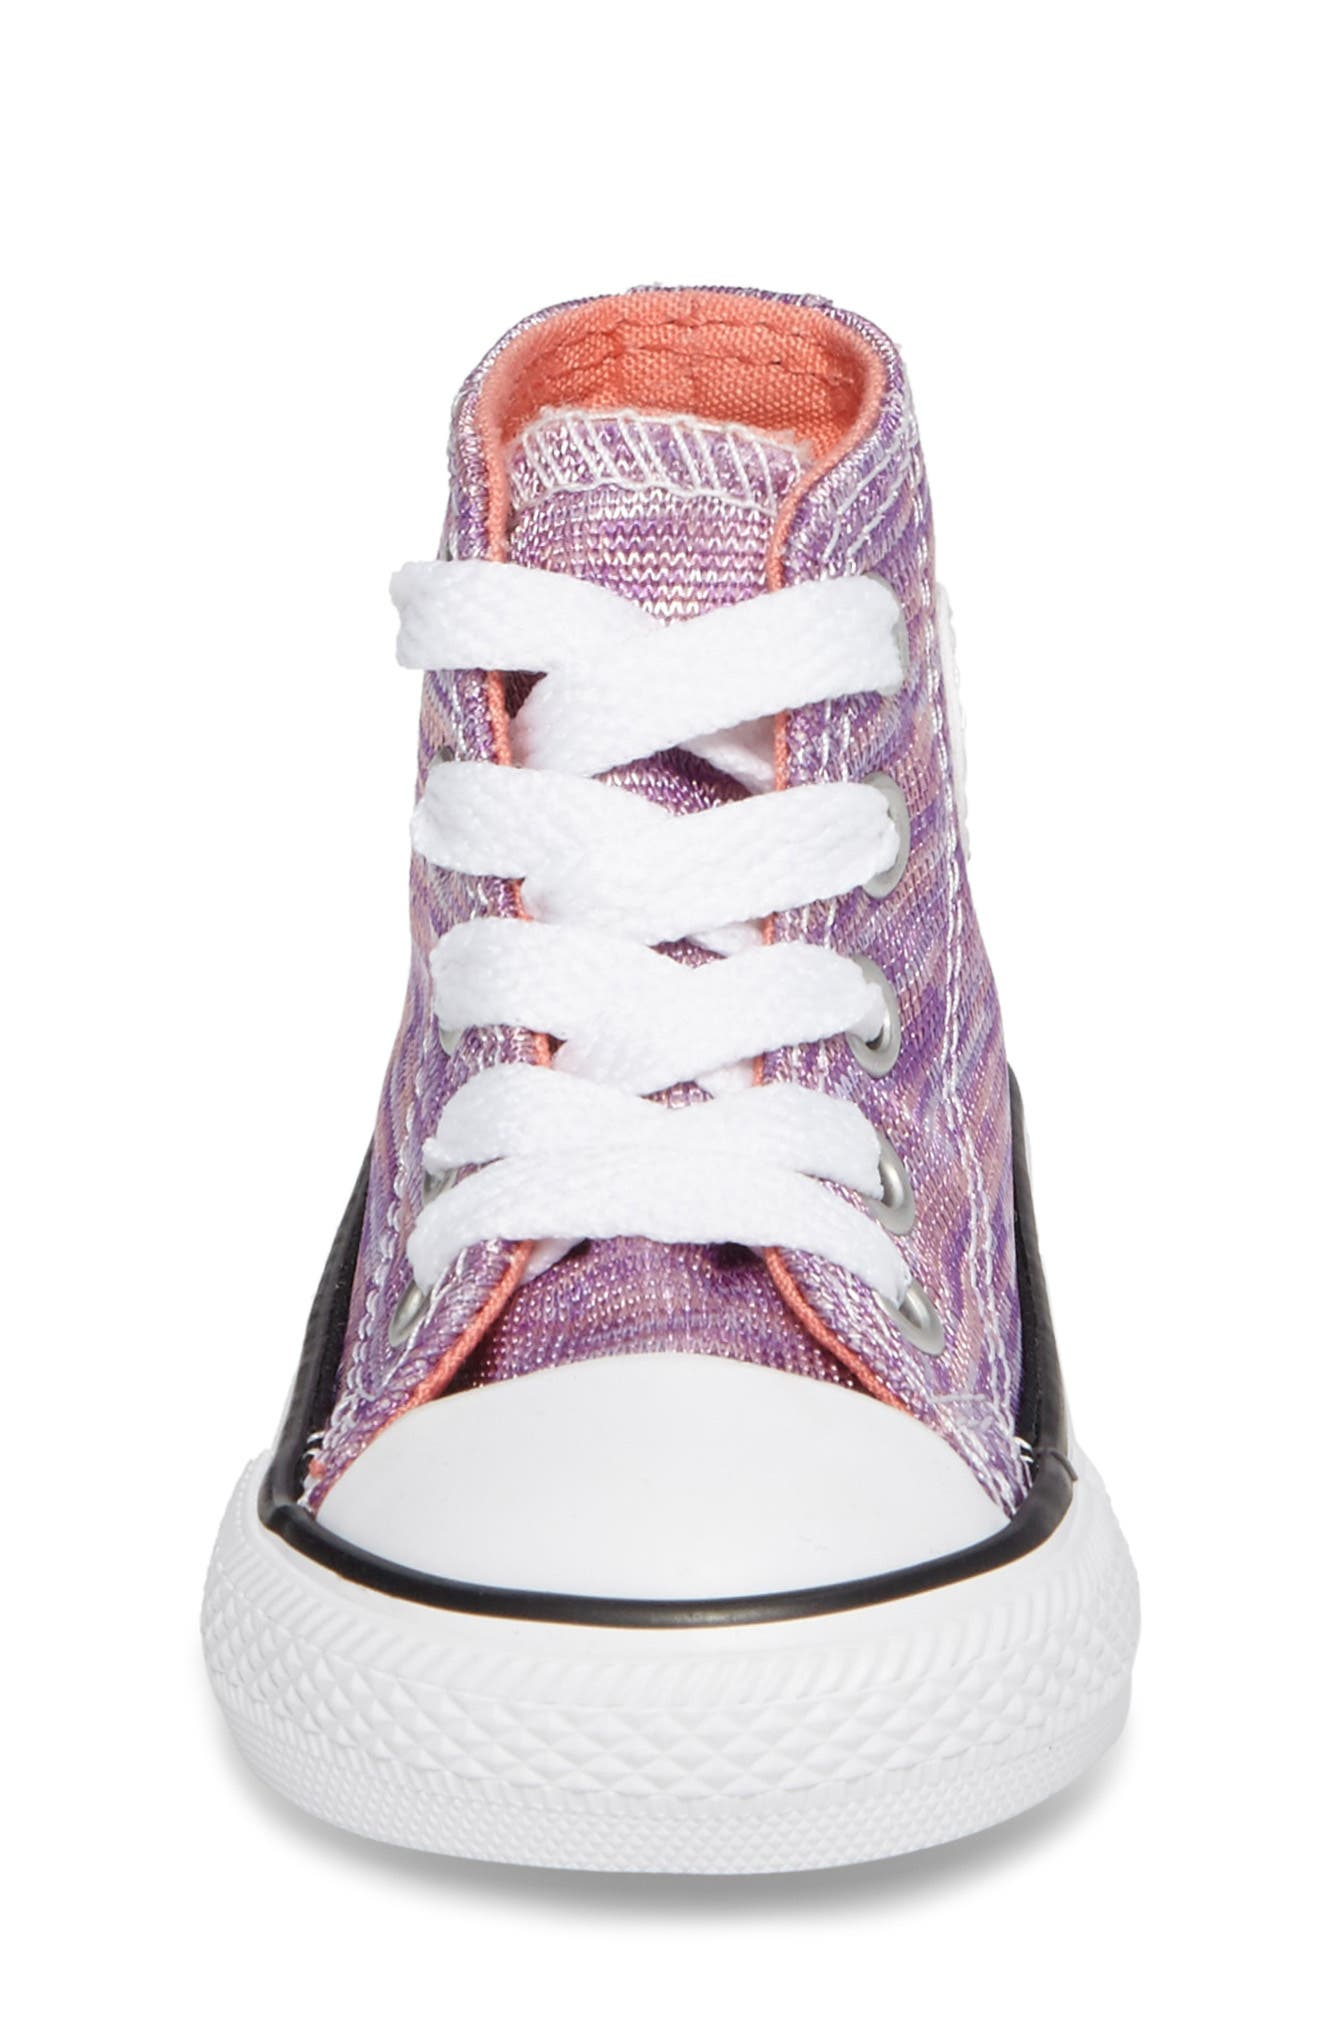 Chuck Taylor<sup>®</sup> All Star<sup>®</sup> Knit High Top Sneaker,                             Alternate thumbnail 4, color,                             Bright Violet Textile